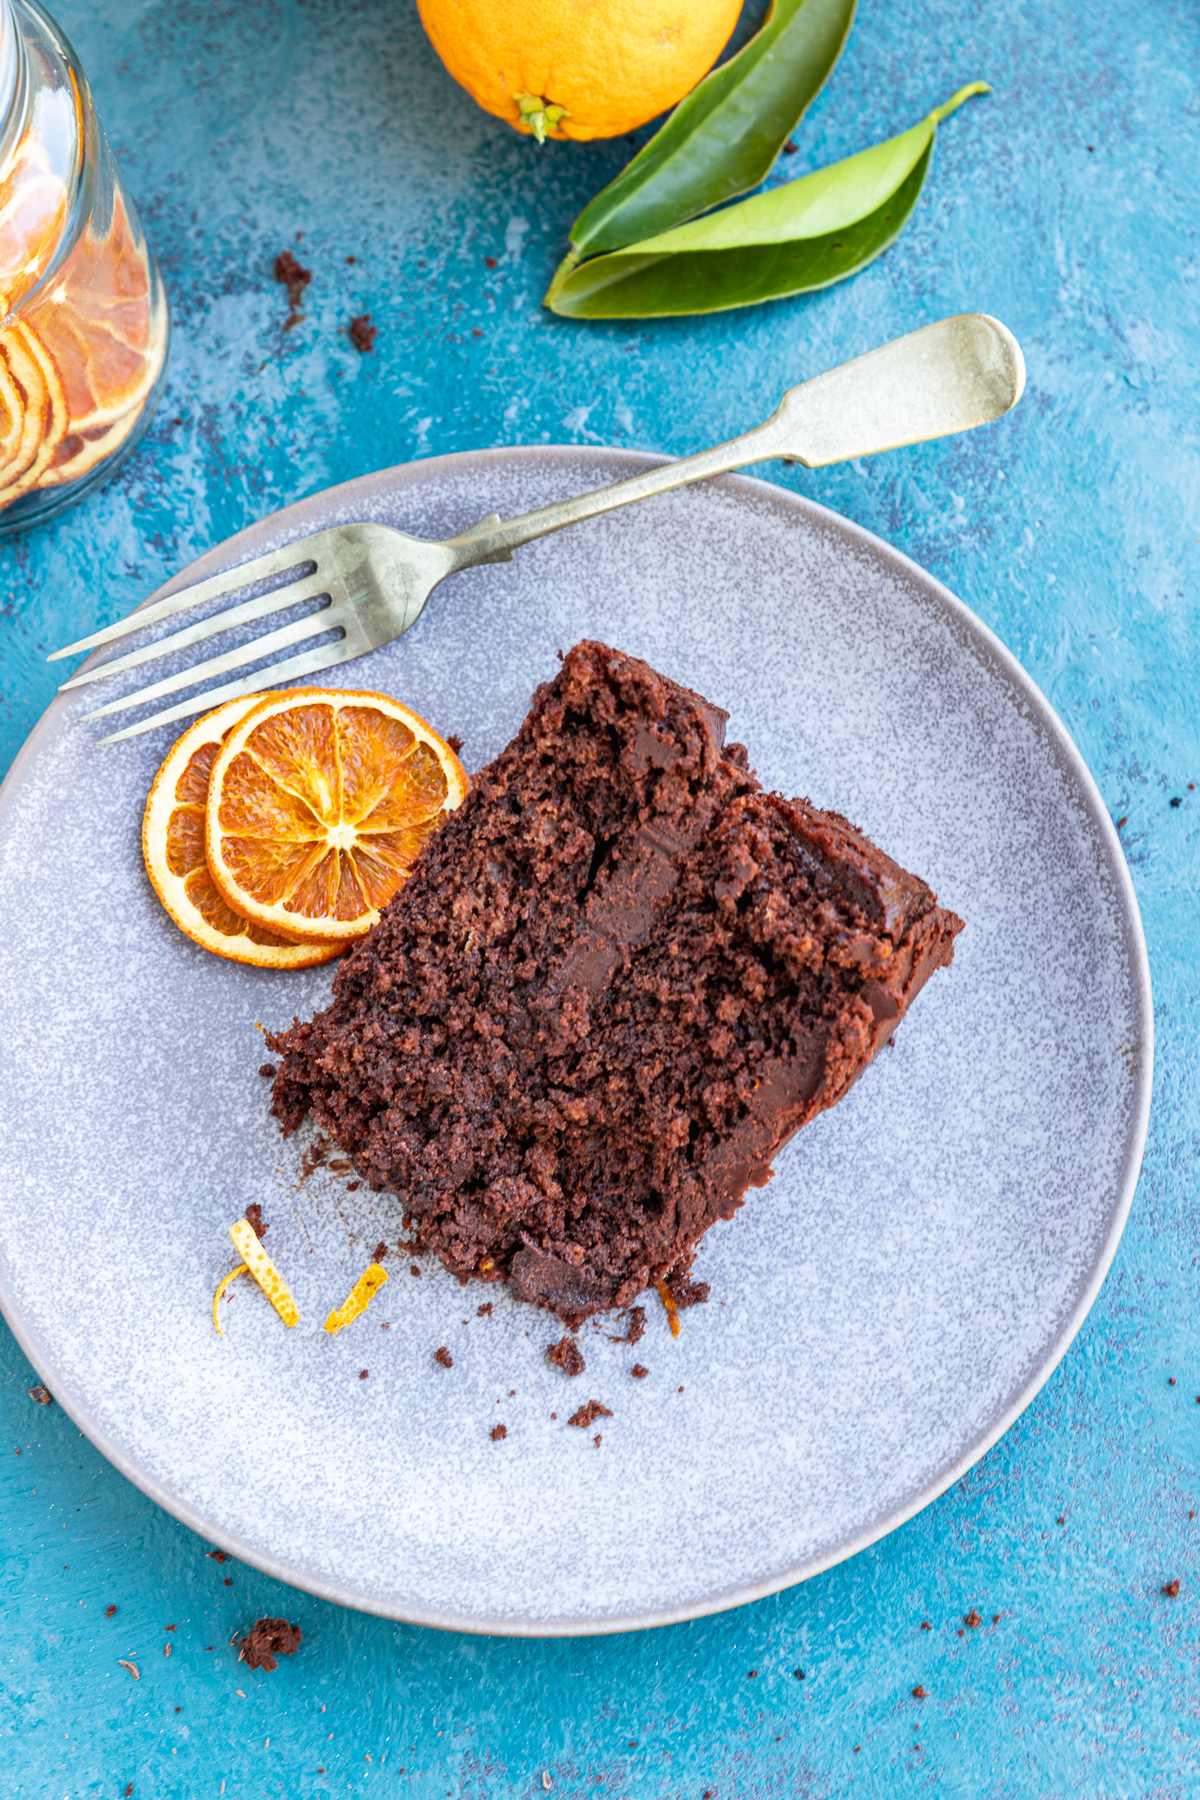 A slice of chocolate orange cake on a pale grey plate with 2 slices of dried orange on the side and a fork - all on a blue background with more orange slices in the corner